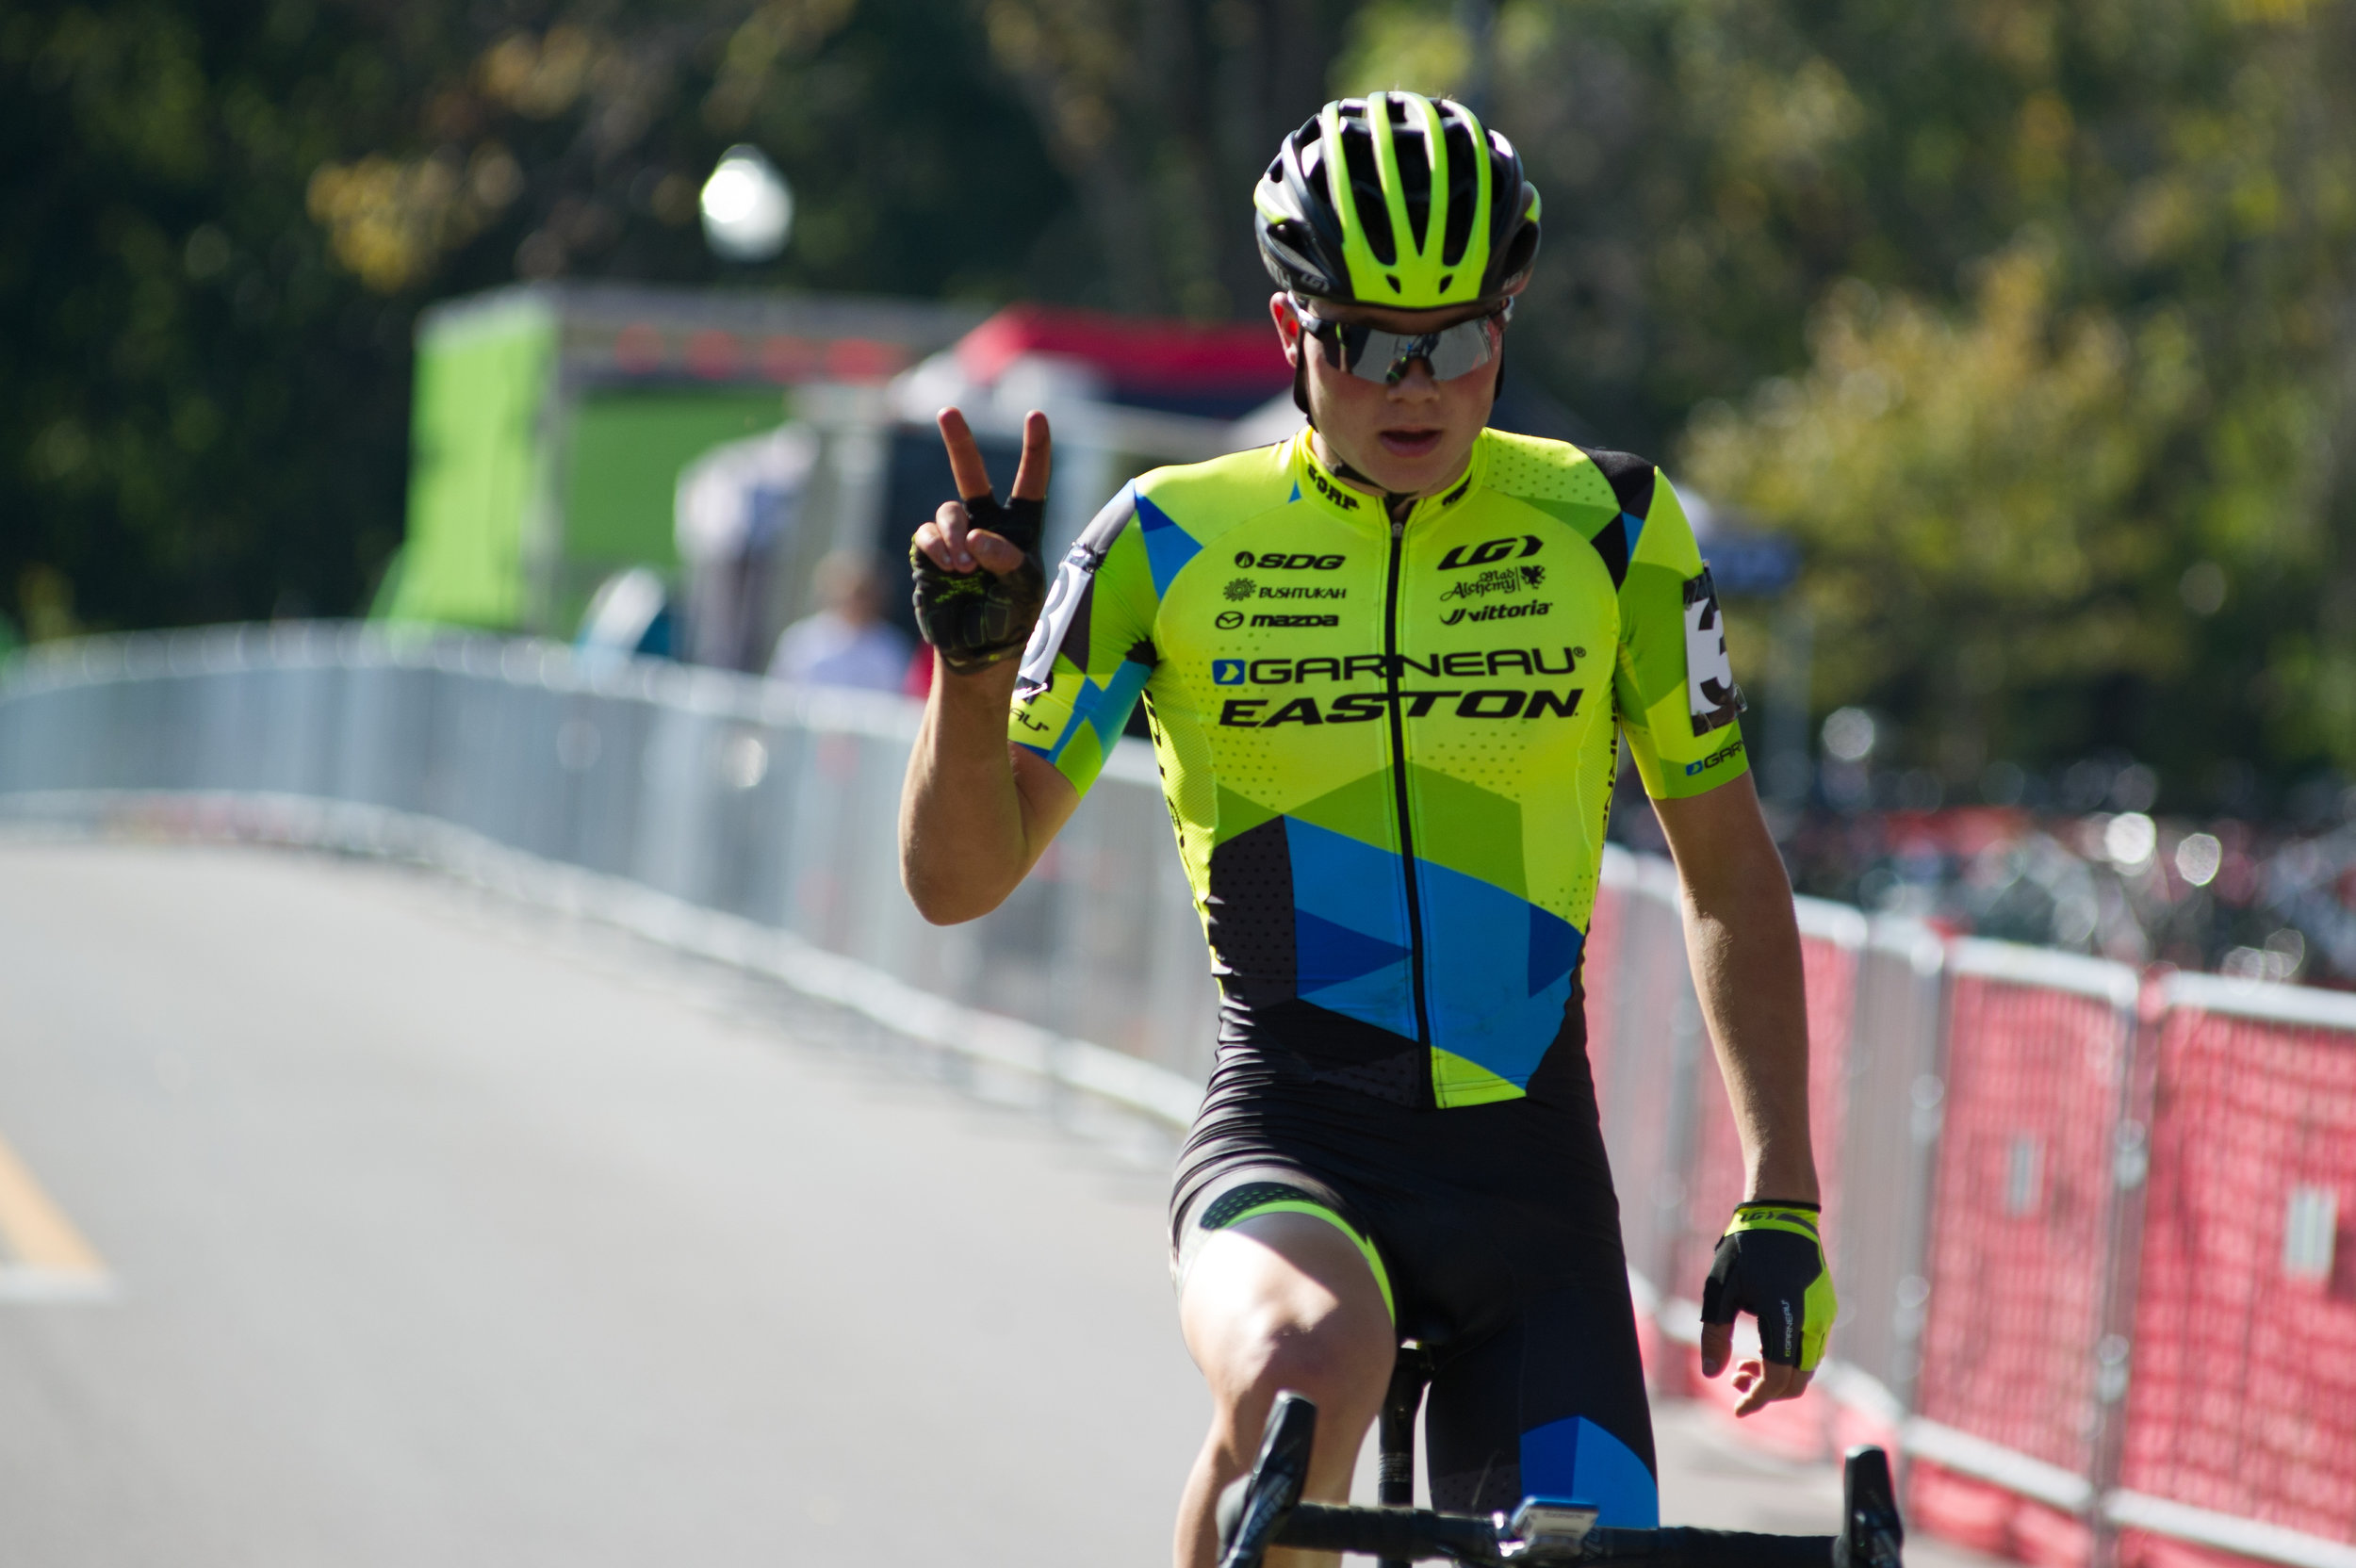 2016102913314636-cxpanamchamps.jpg